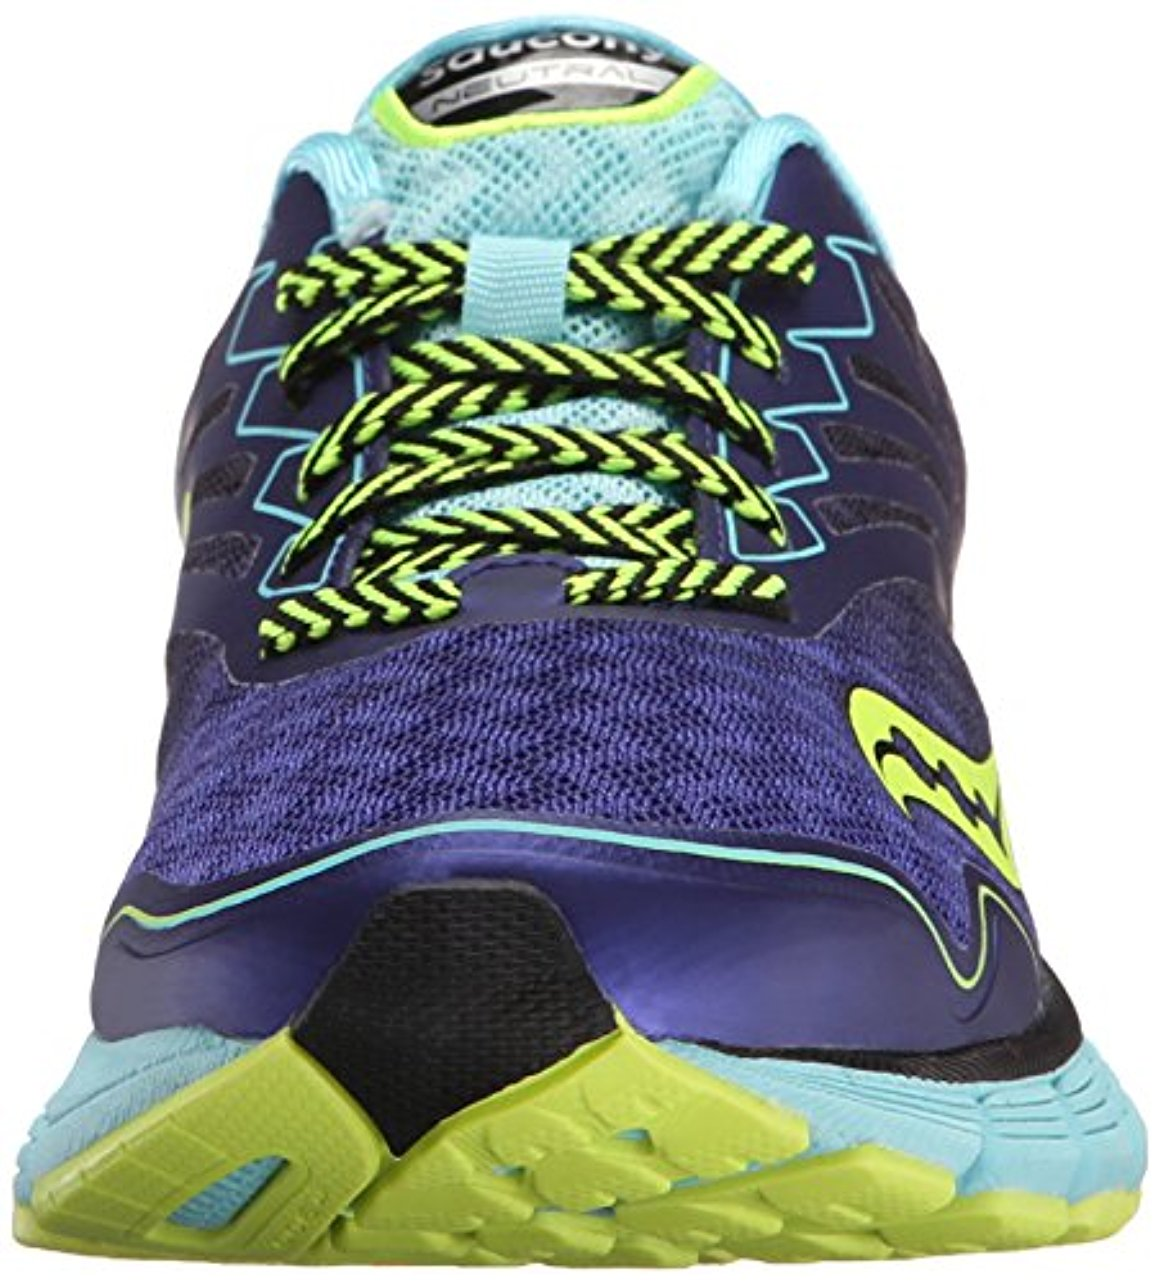 Saucony Women's Breakthru 2 Running Shoe, Twilight/Oxygen/Citron, 7.5 M US